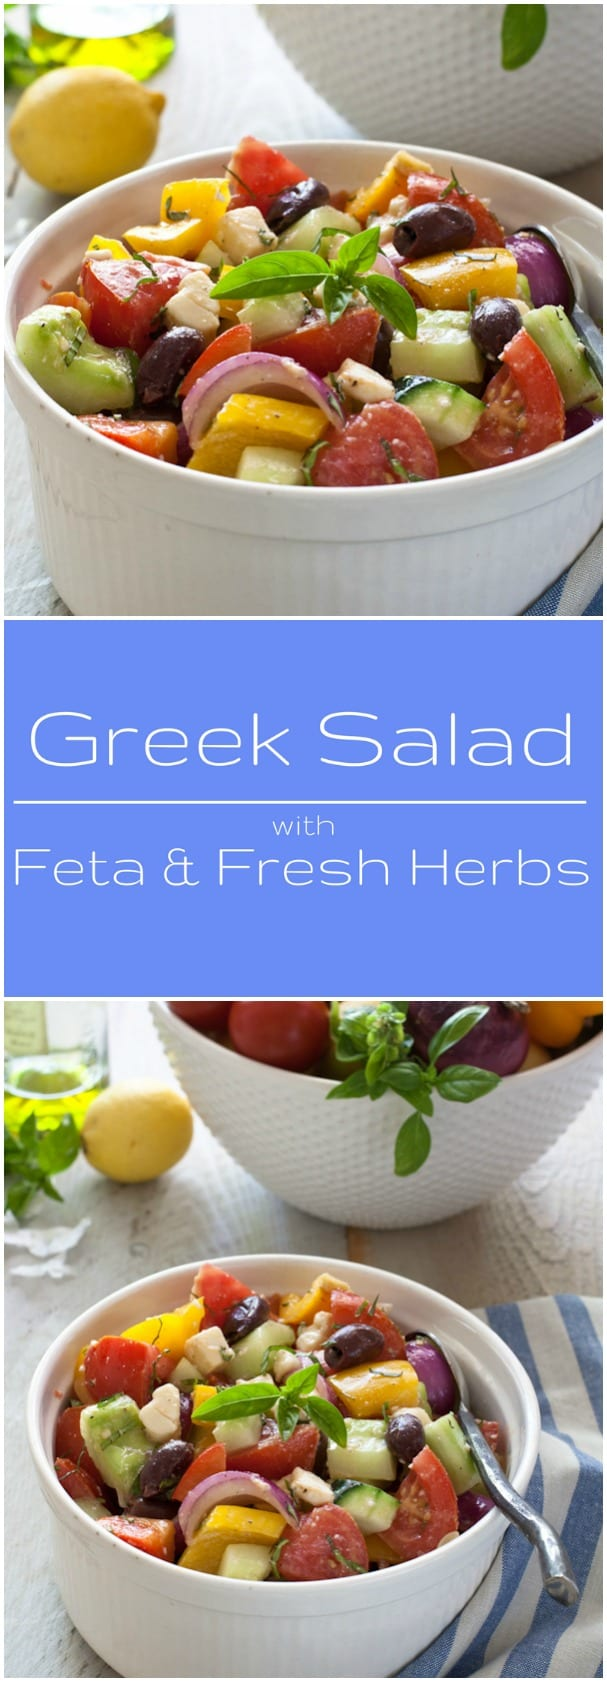 Delicious Greek Salad with Feta and Fresh Herbs. Gluten free and vegetarian.